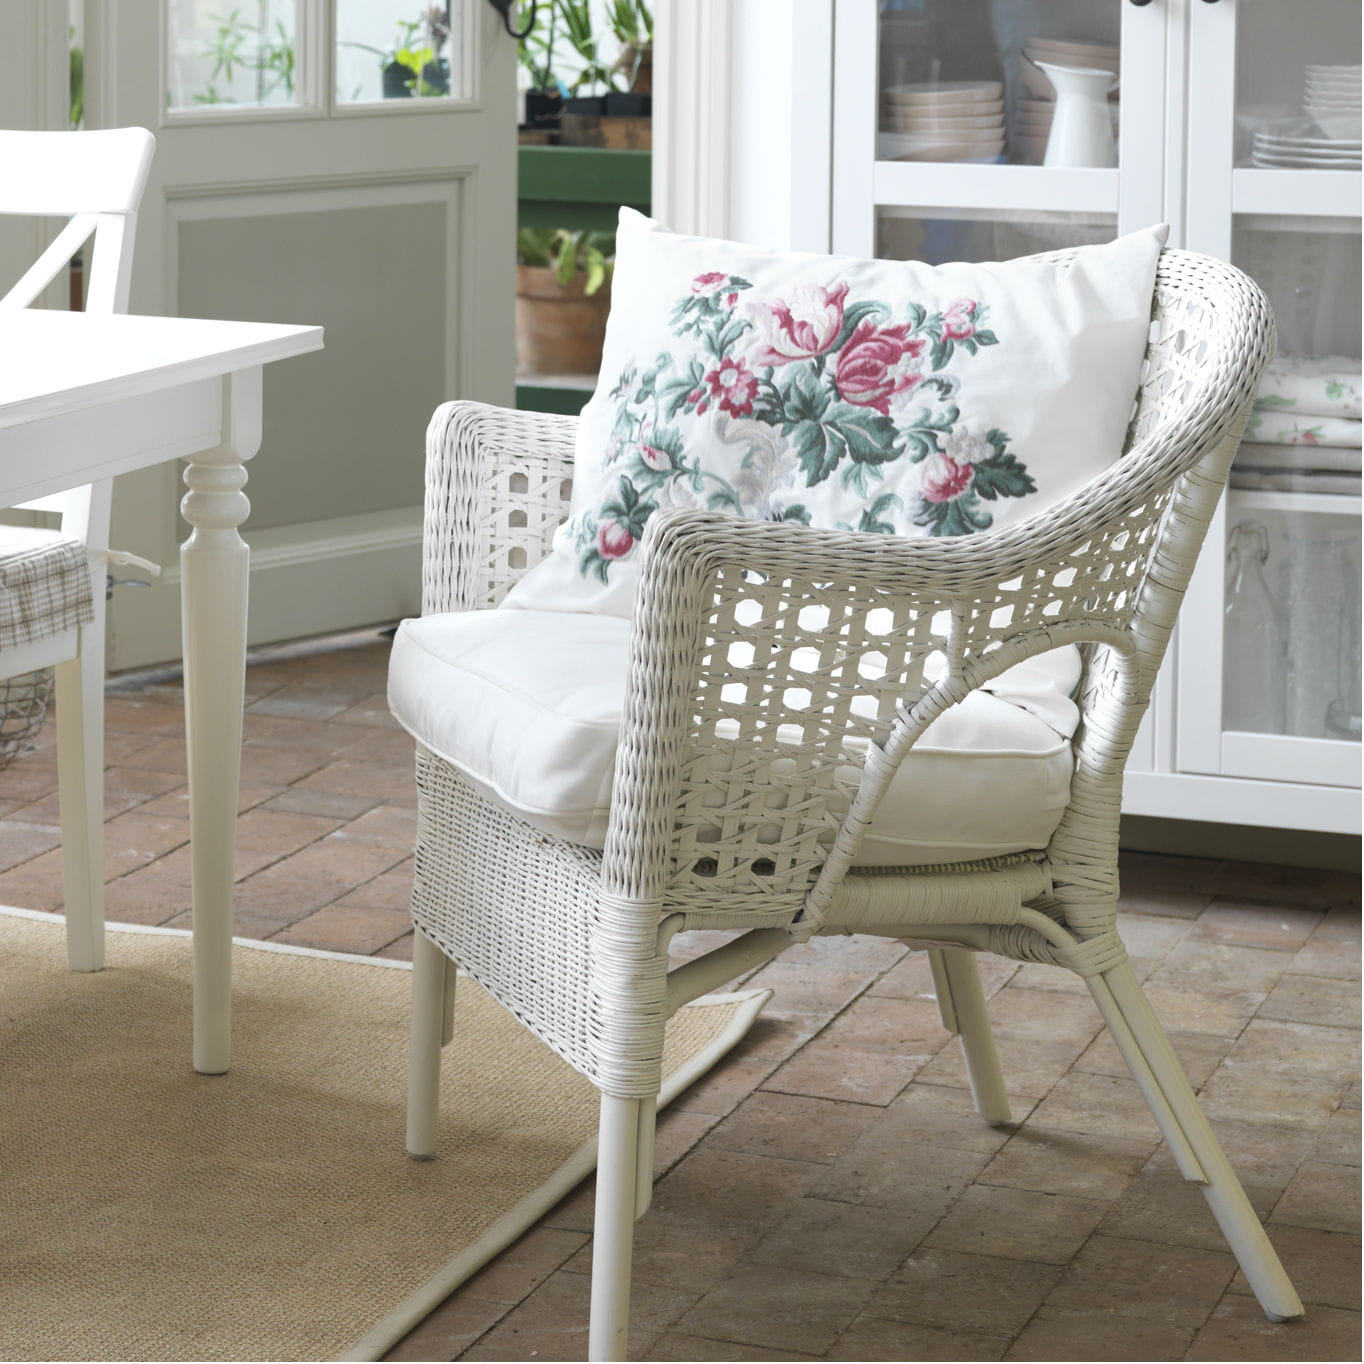 Ikea fauteuil osier blanc table de lit for Chaise rotin ikea